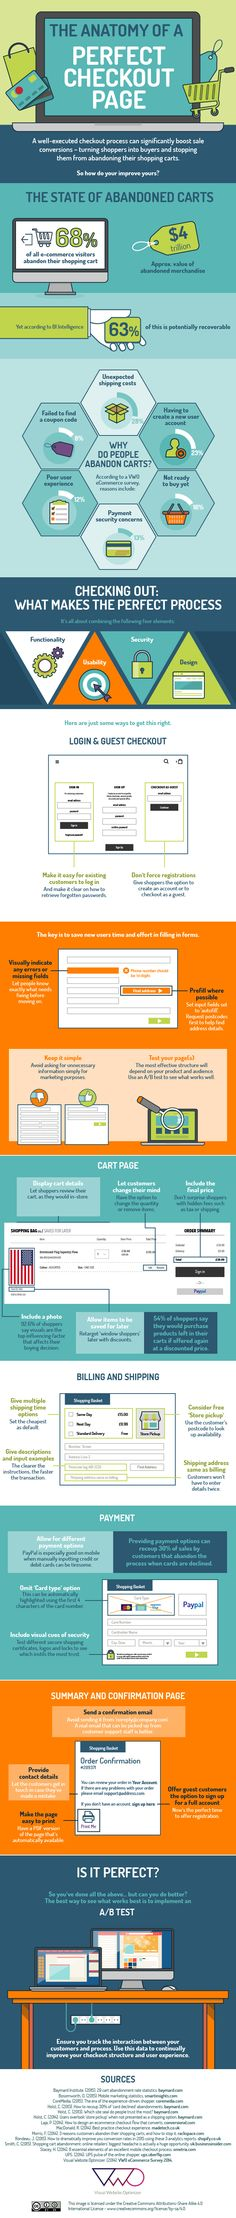 The Anatomy of a Perfect Checkout Page: 68% of all ecommerce visitors abandon their shopping carts